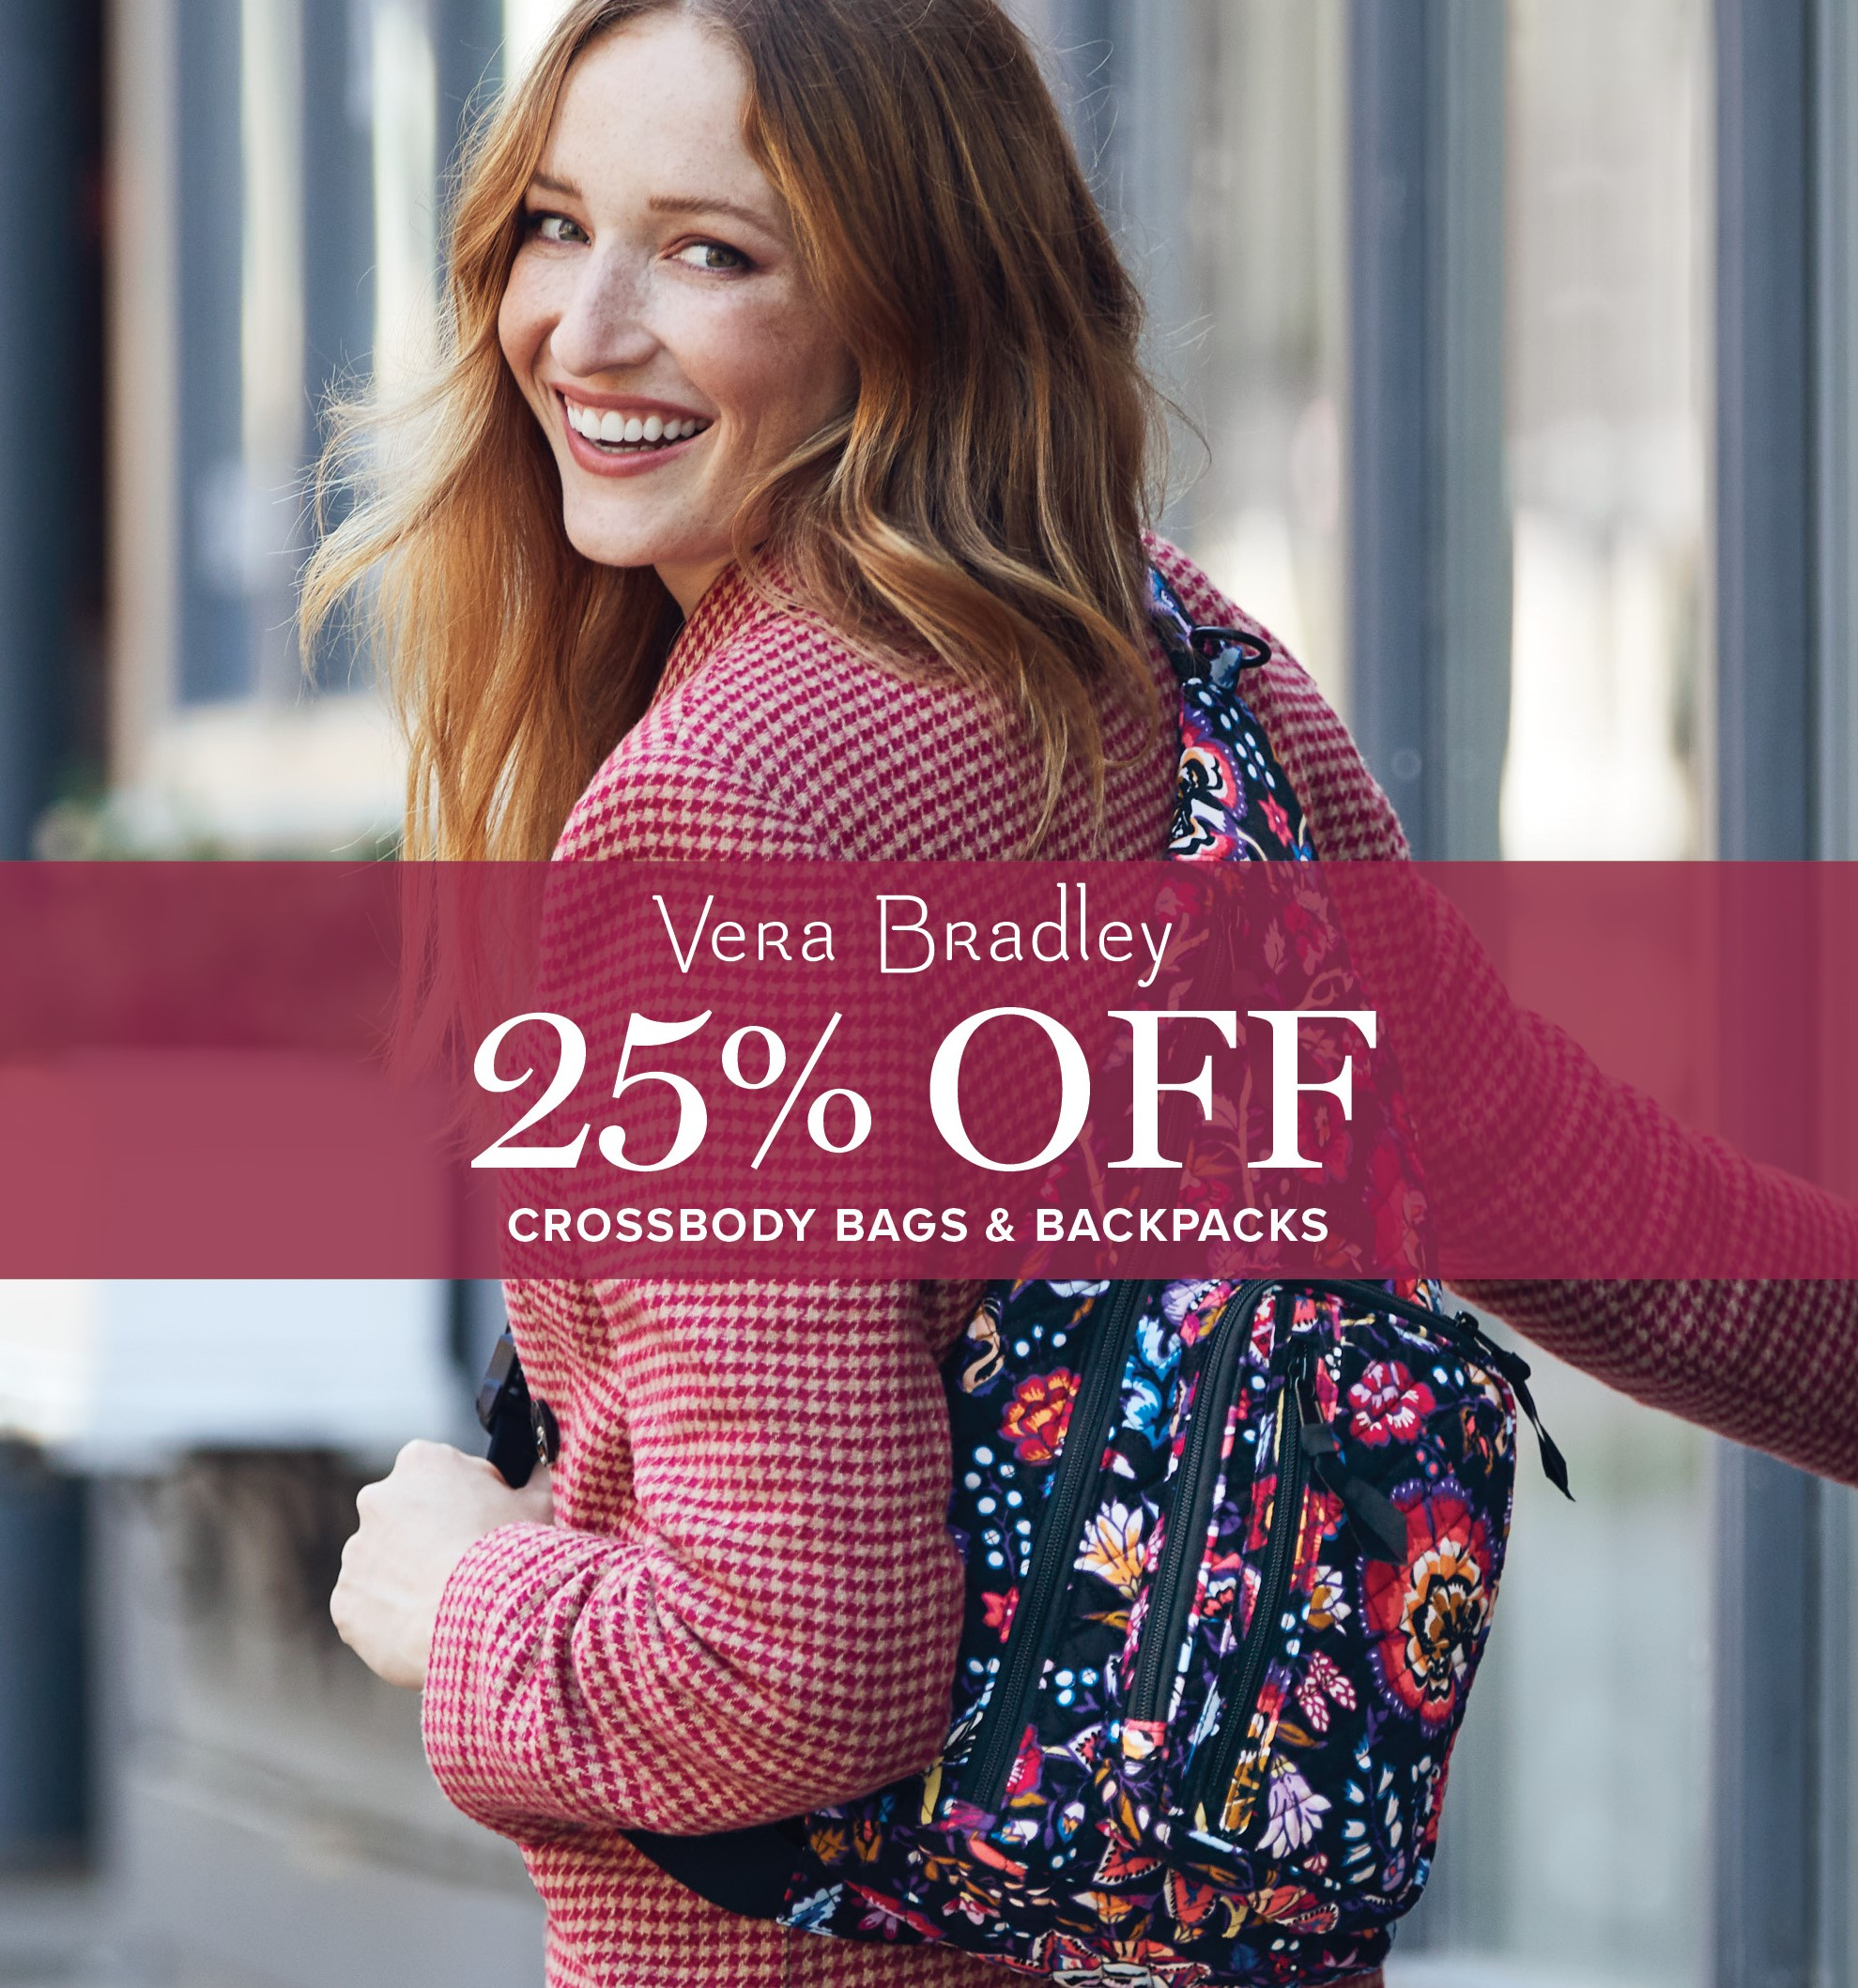 Crossbody Bags & Backpack Sale from Vera Bradley